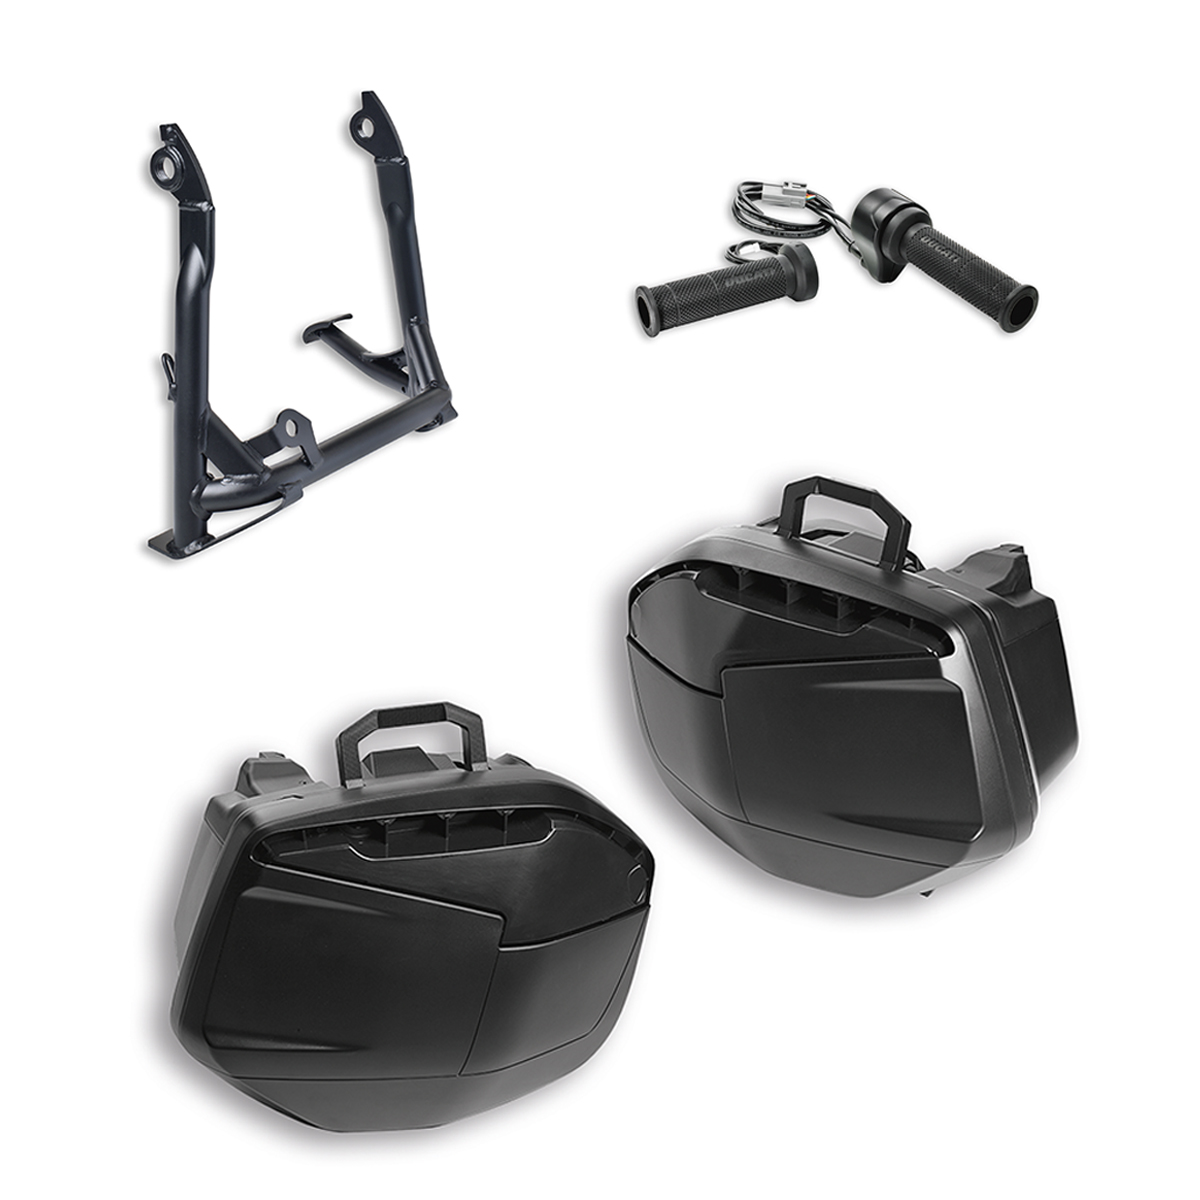 Multistrada 1260 Touring accessory package.